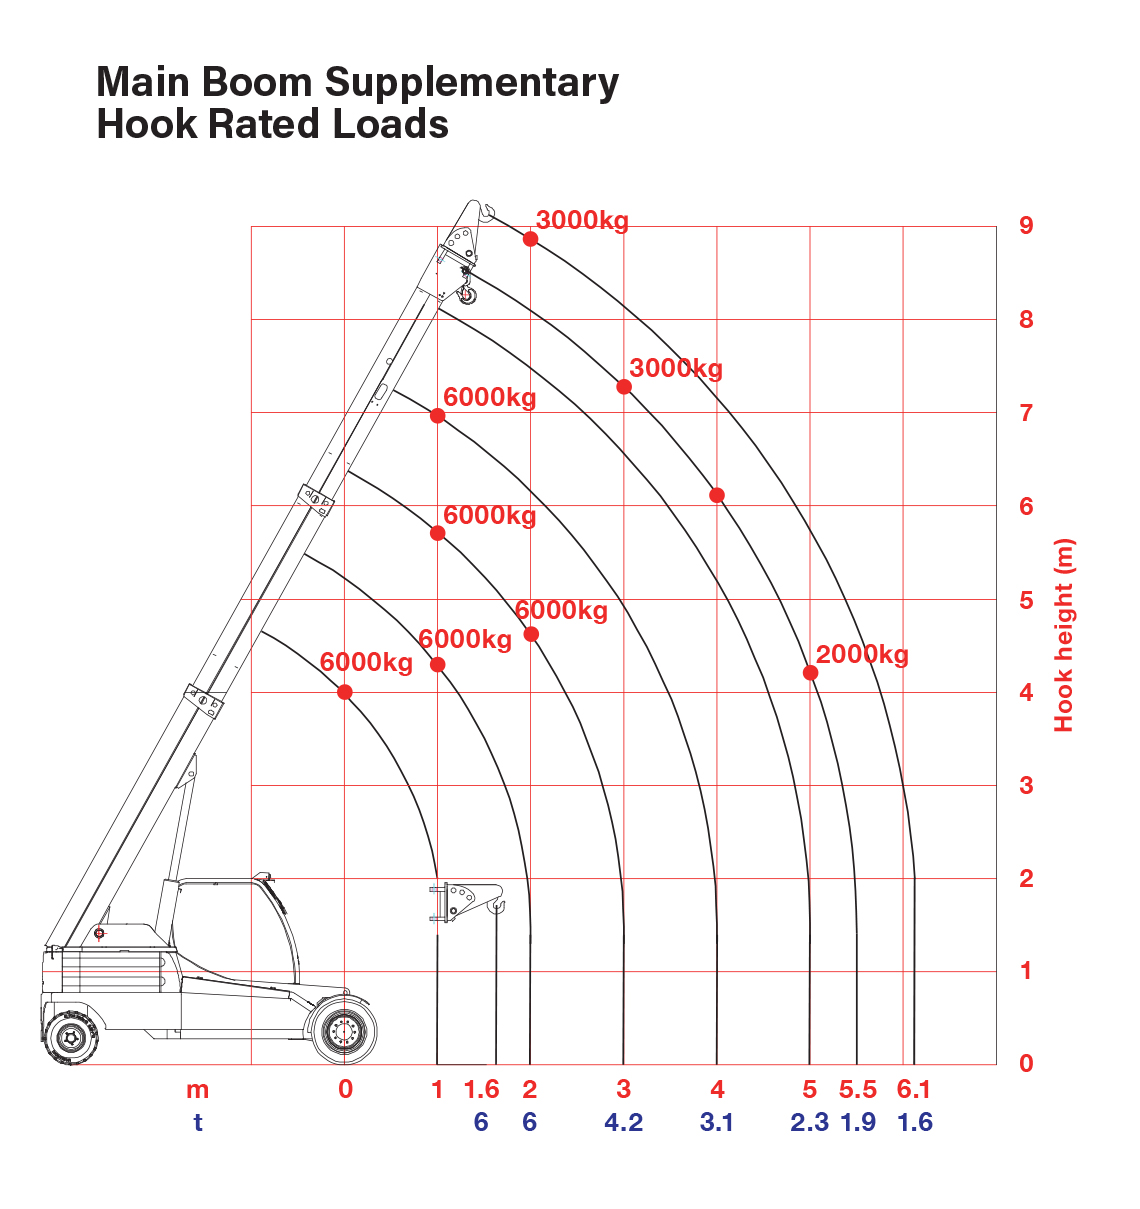 GF100 - Main Boom Supplementary Hook Rated Loads